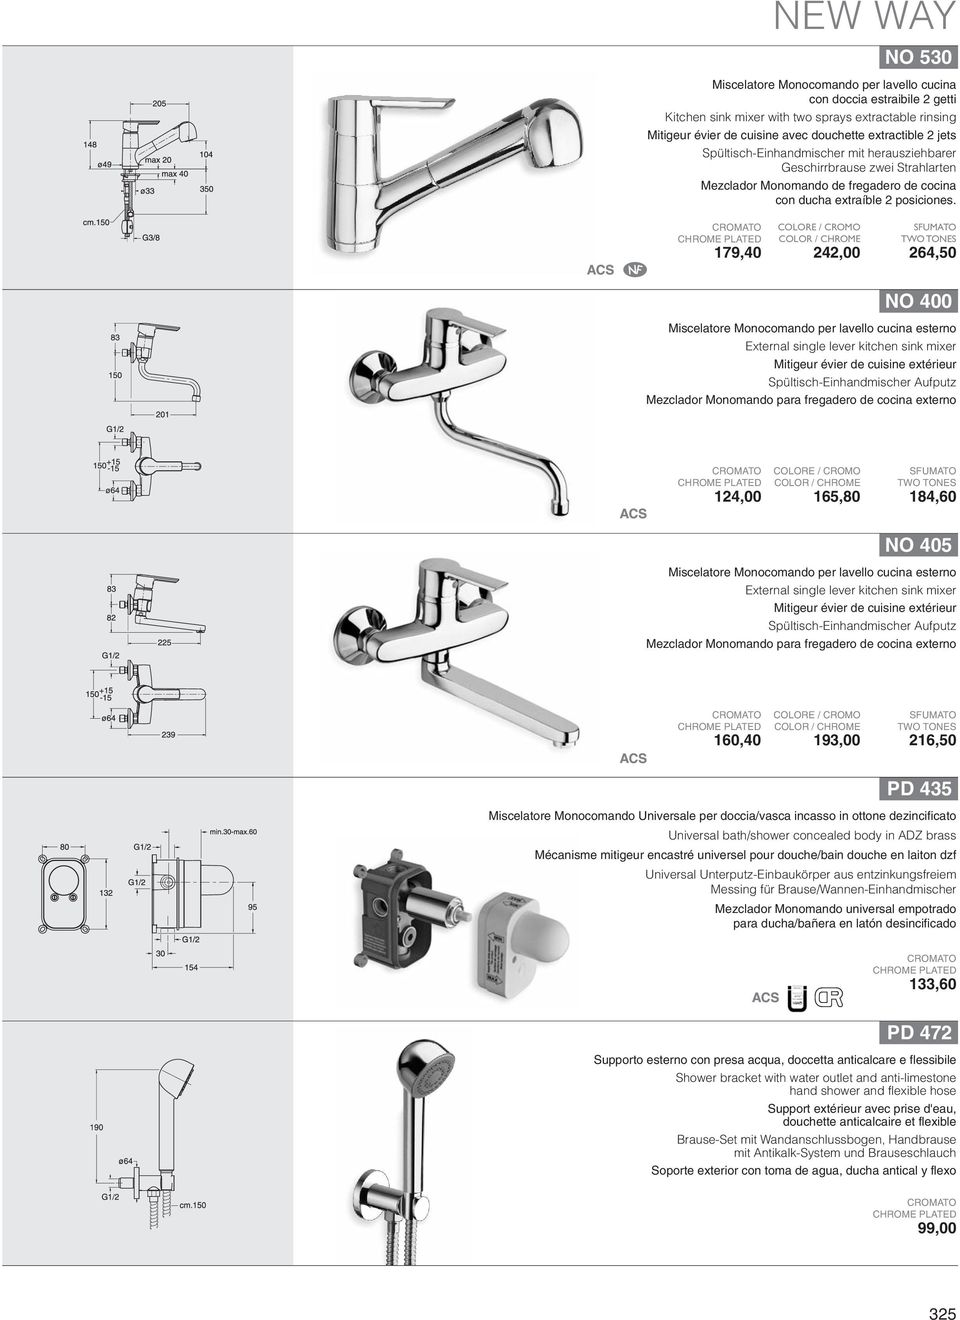 179,40 242,00 264,50 NO 400 Miscelatore Monocomando per lavello cucina esterno External single lever kitchen sink mixer Mitigeur évier de cuisine extérieur Spültisch-Einhandmischer Aufputz Mezclador